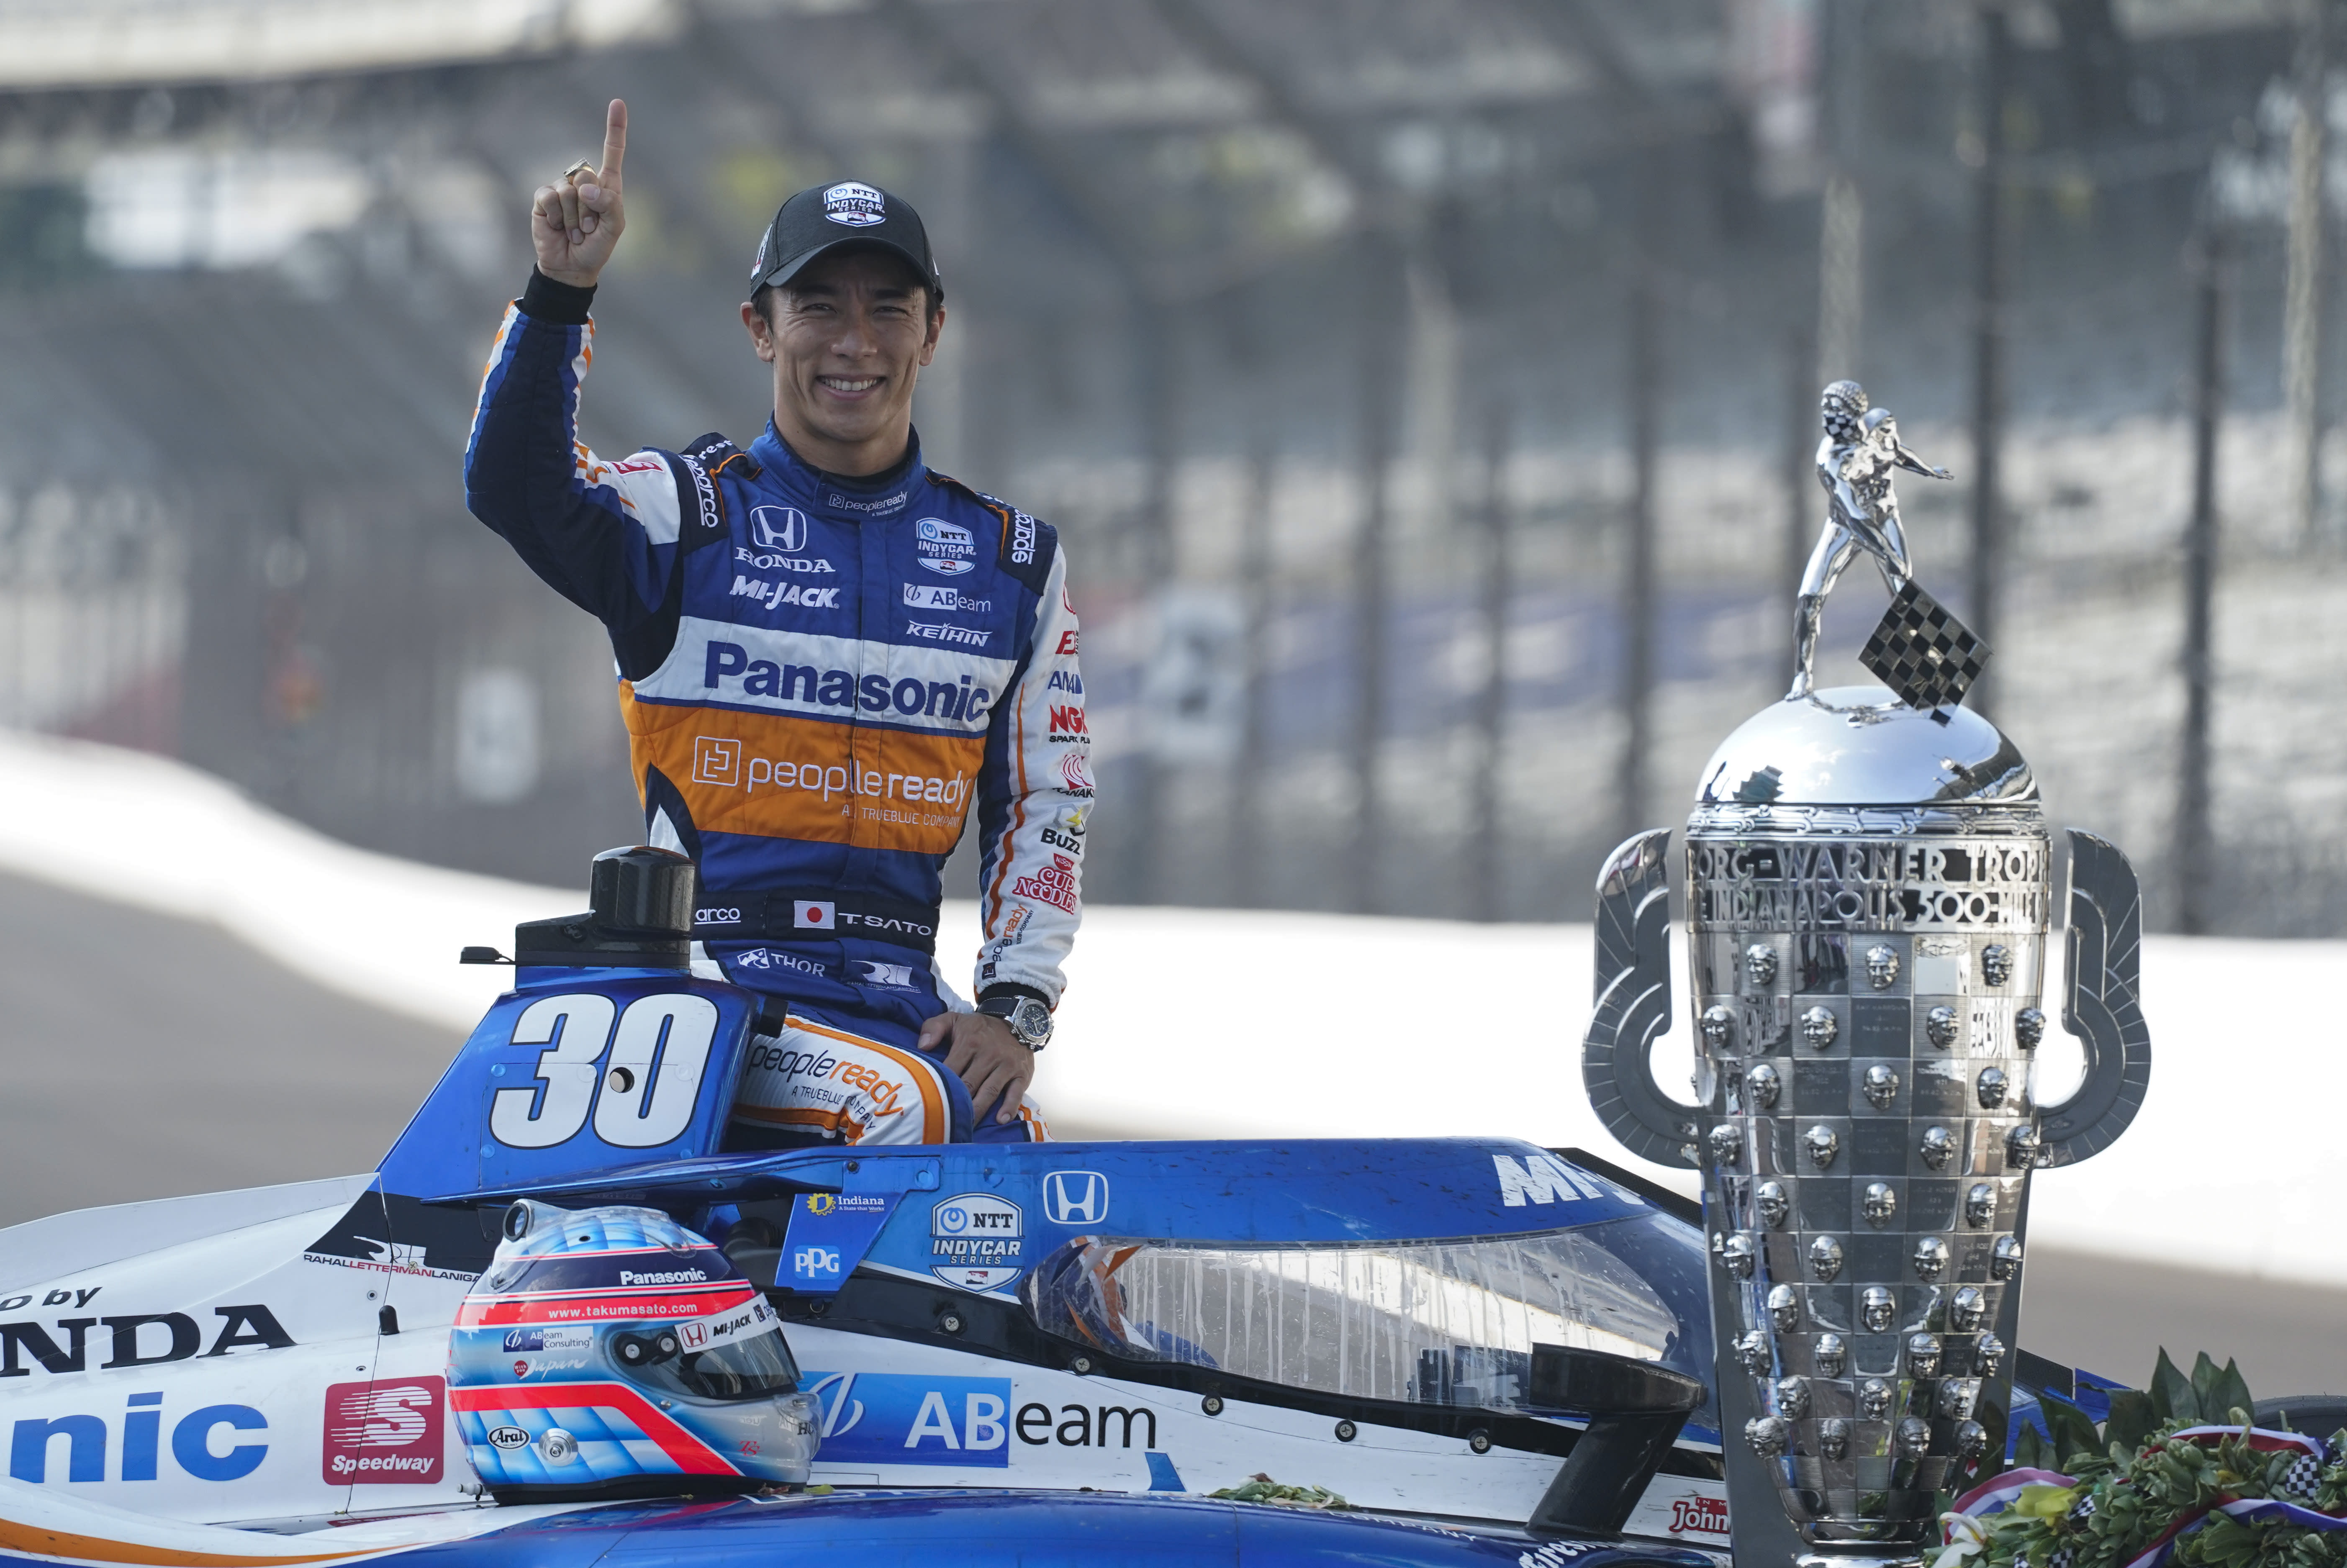 Takuma Sato, of Japan, winner of the 2020 Indianapolis 500 auto race, poses during the traditional winners photo session at the Indianapolis Motor Speedway, Monday, Aug. 24, 2020, in Indianapolis. (AP Photo/Darron Cummings)